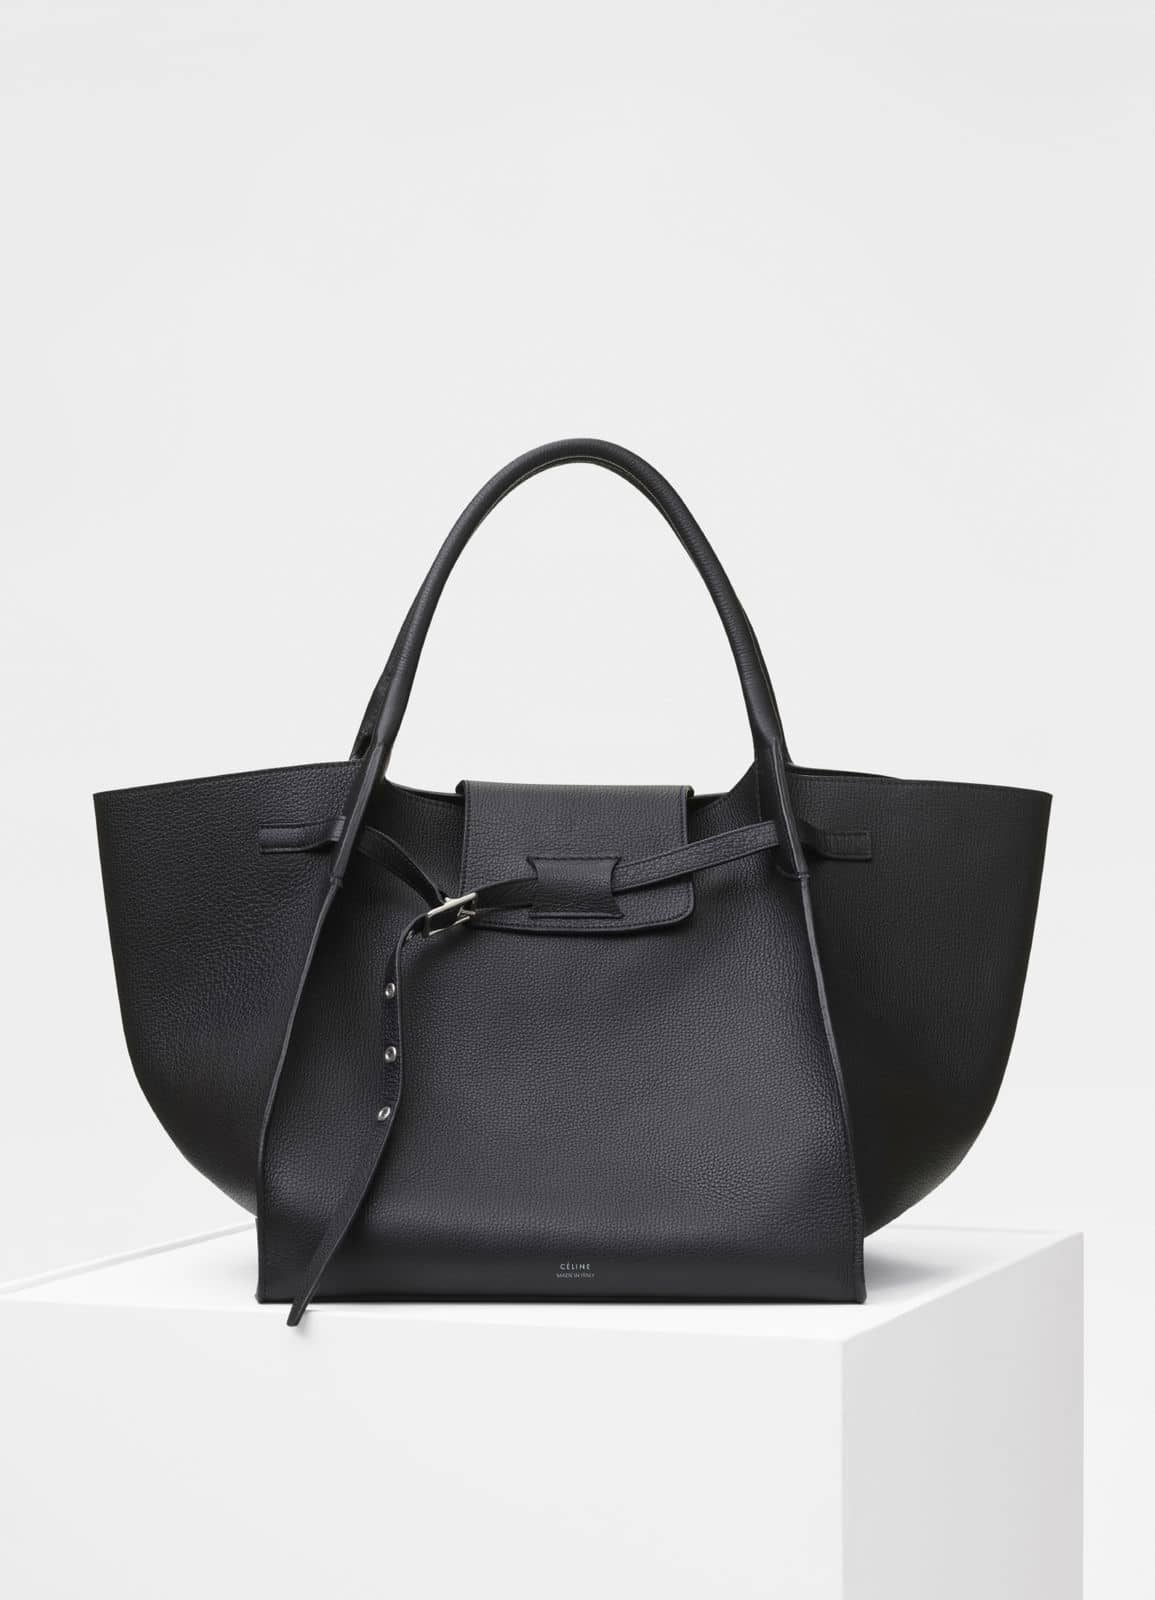 Celine Spring 2018 Bag Collection Featuring the Big Bucket  8127a80b9ff82